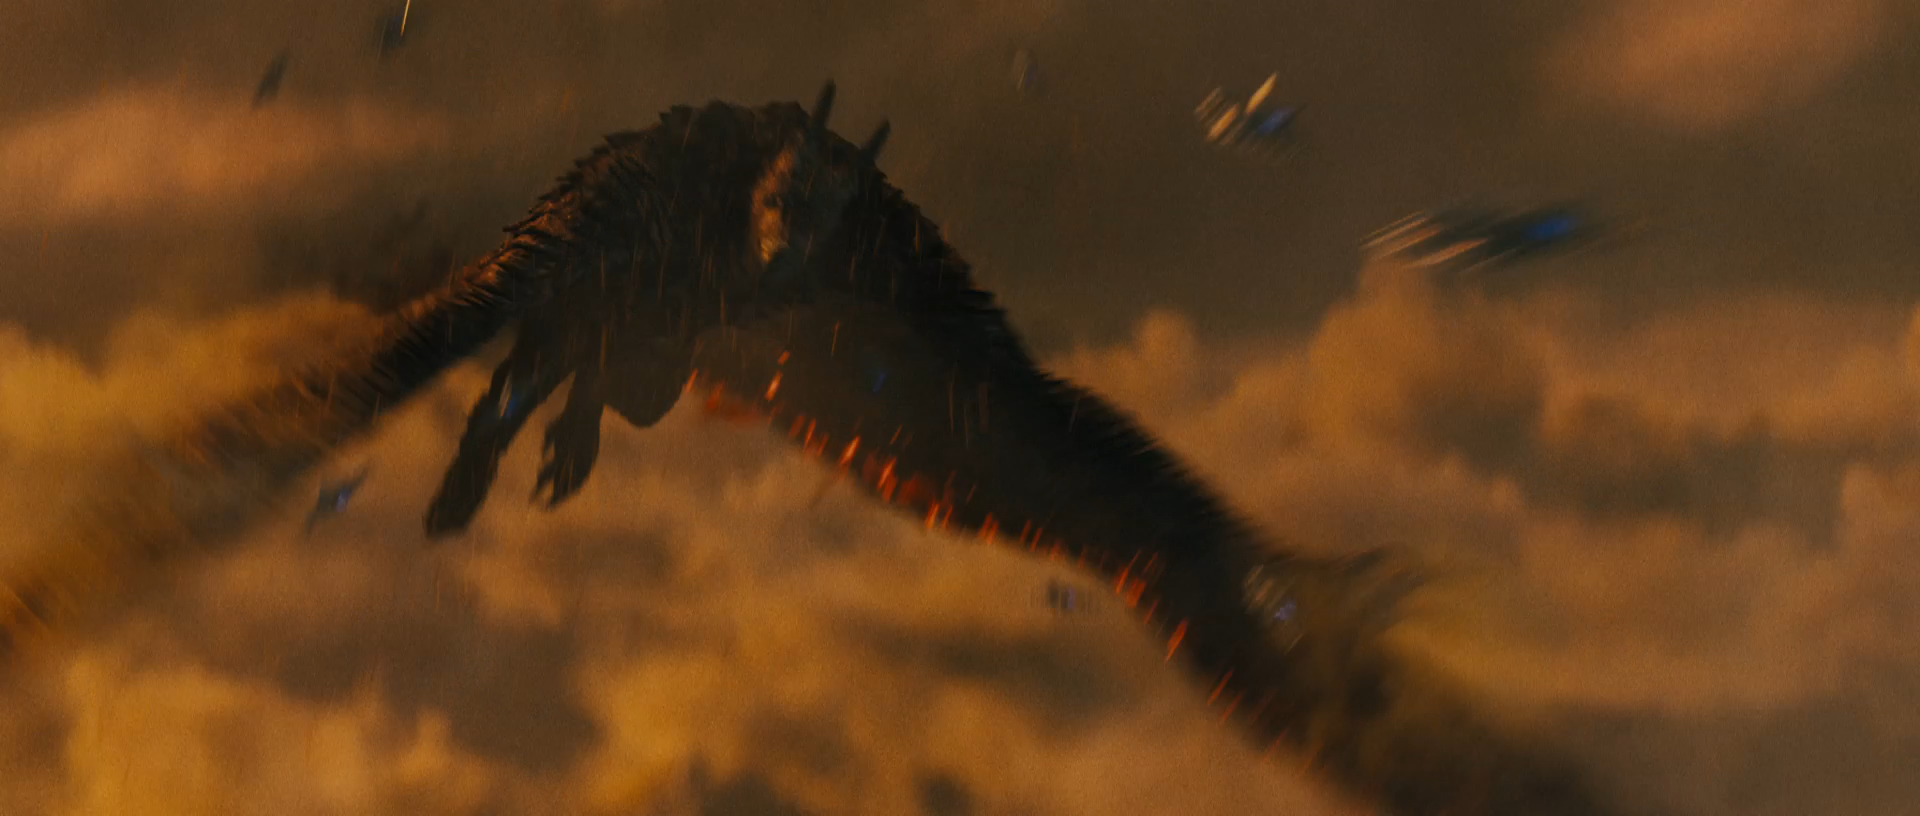 Resultado de imagem para godzilla king of the monsters rodan